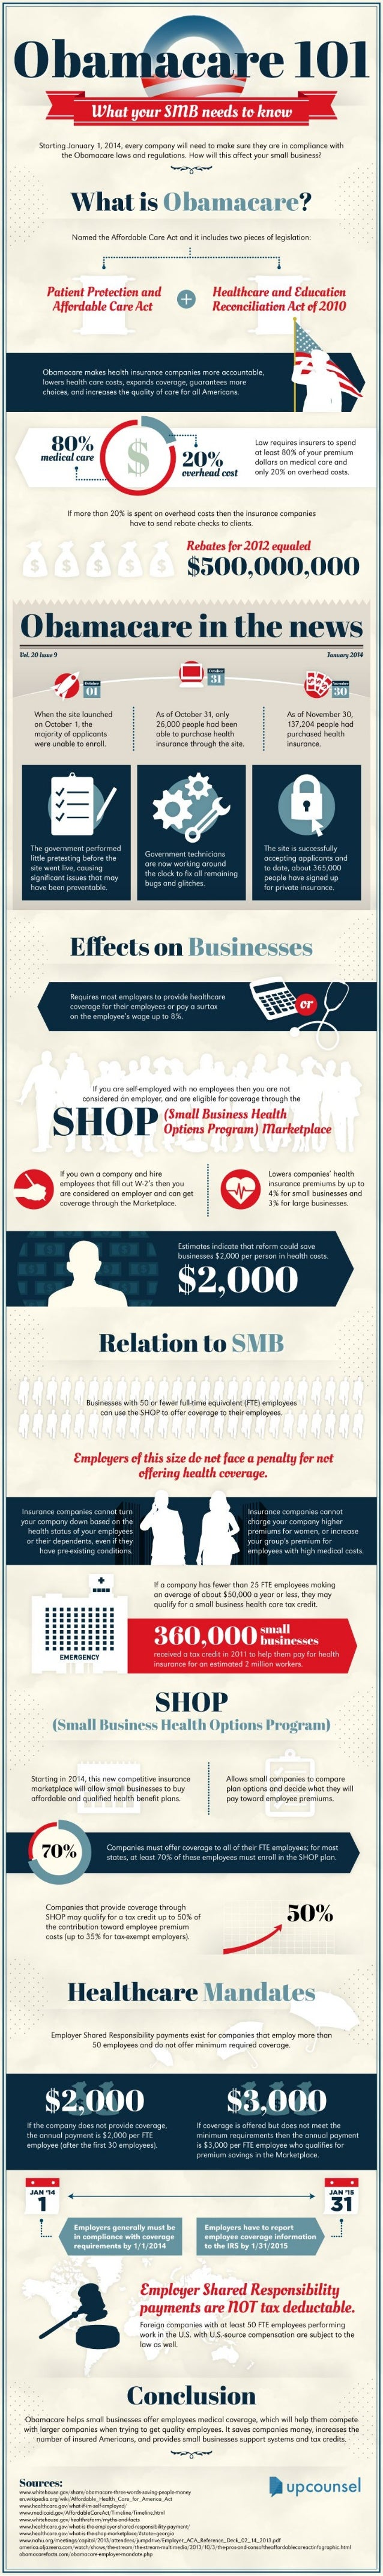 Obamacare 101: What your small business needs to know